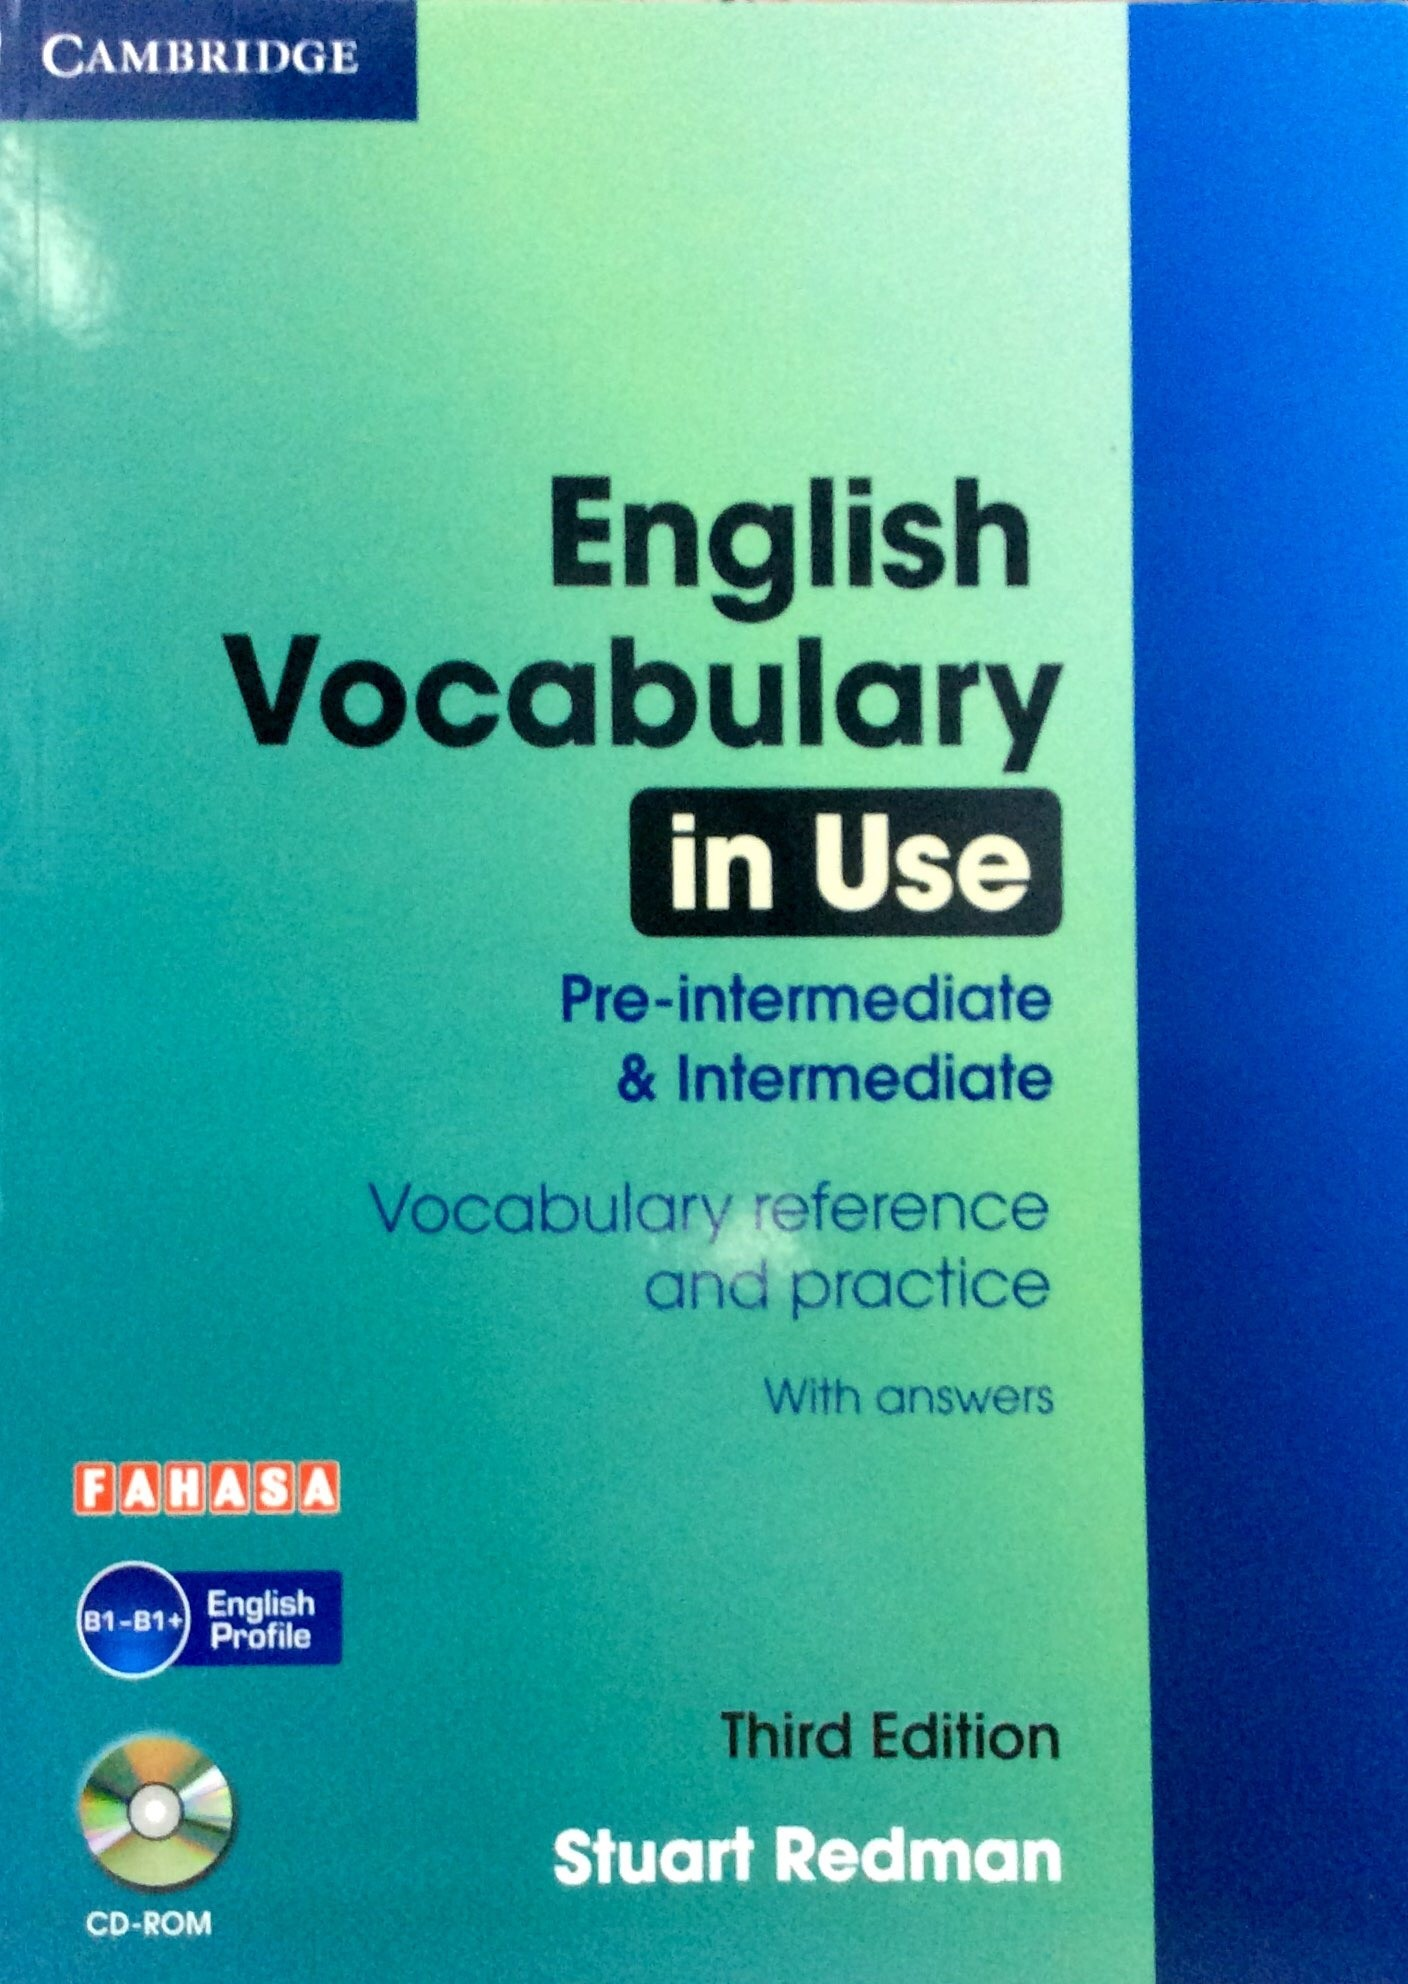 English Vocabulary in Use - Pre Inter & Intermediate (Sách kèm CD)